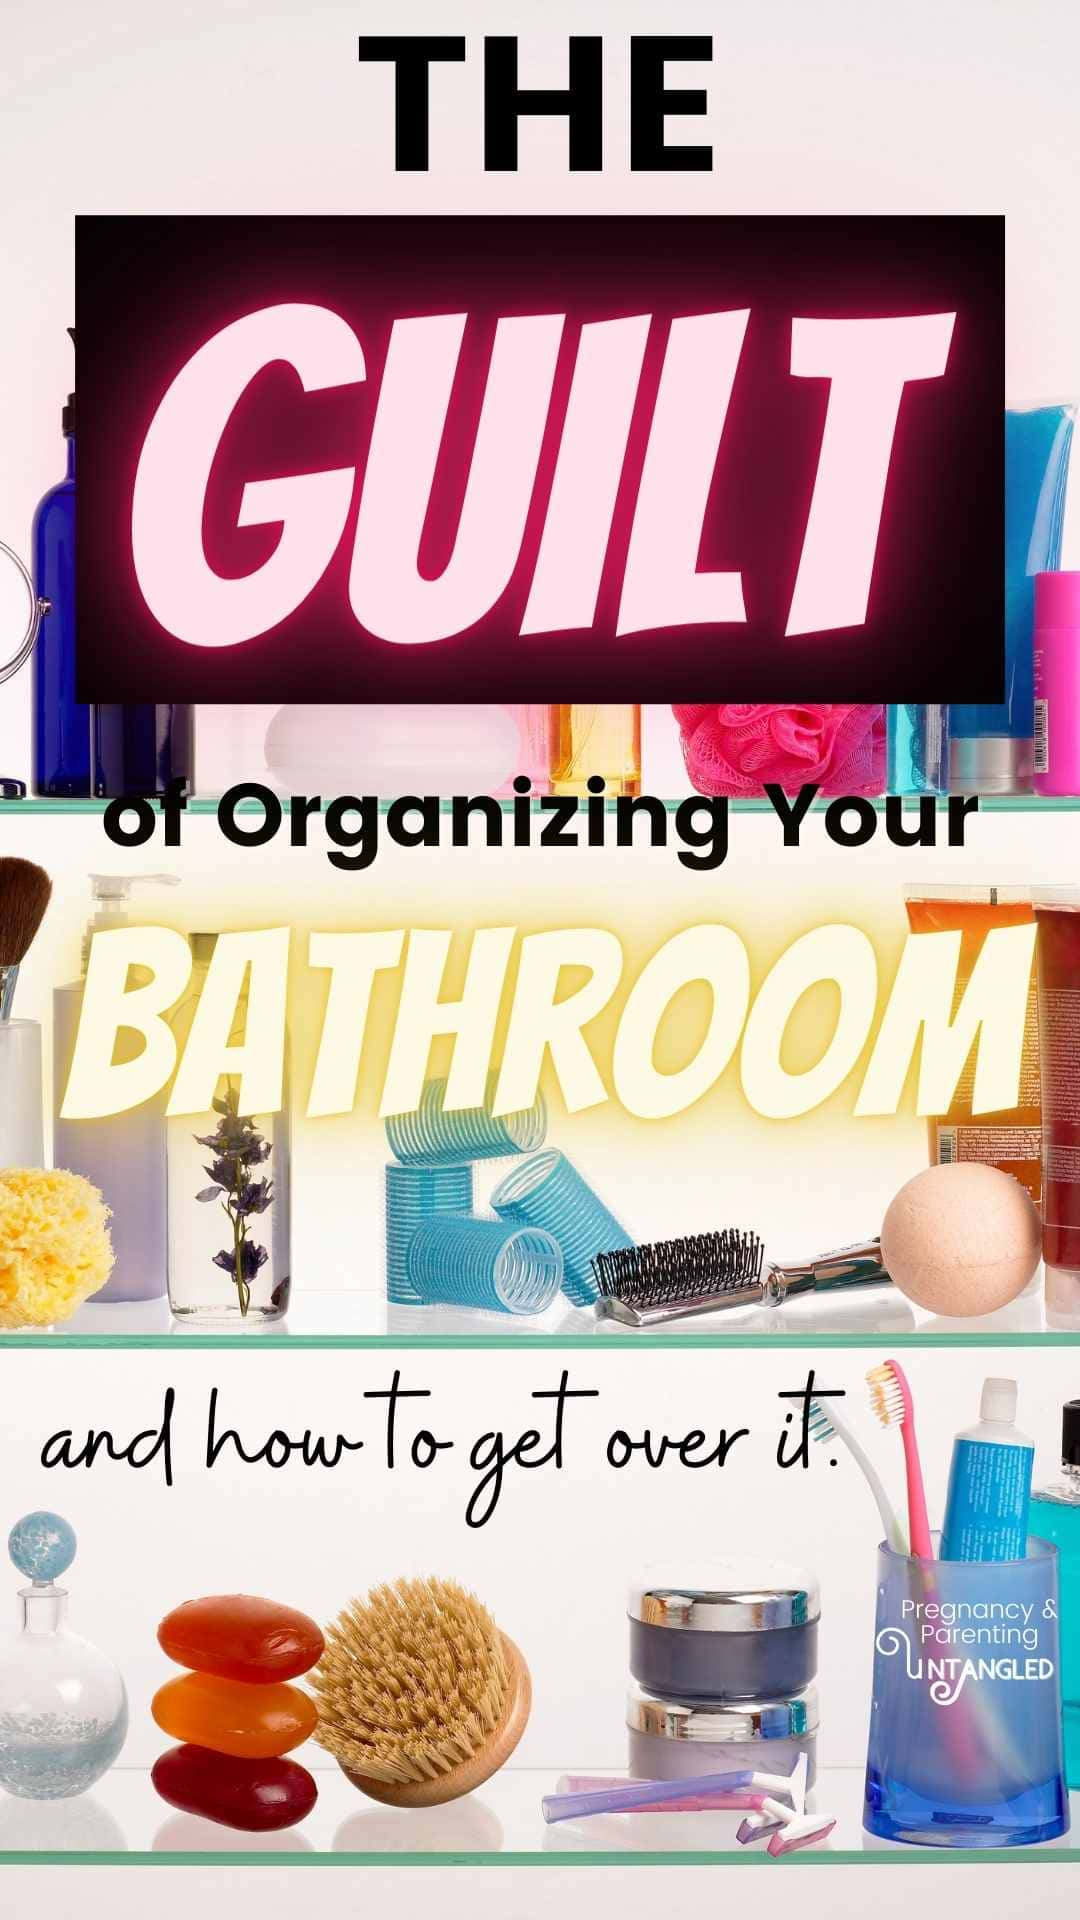 The GUILT of organizing your bathroom, and throwing out beauty products can sometimes paralyze us into not making a change for the good. How do we stop that? via @pullingcurls